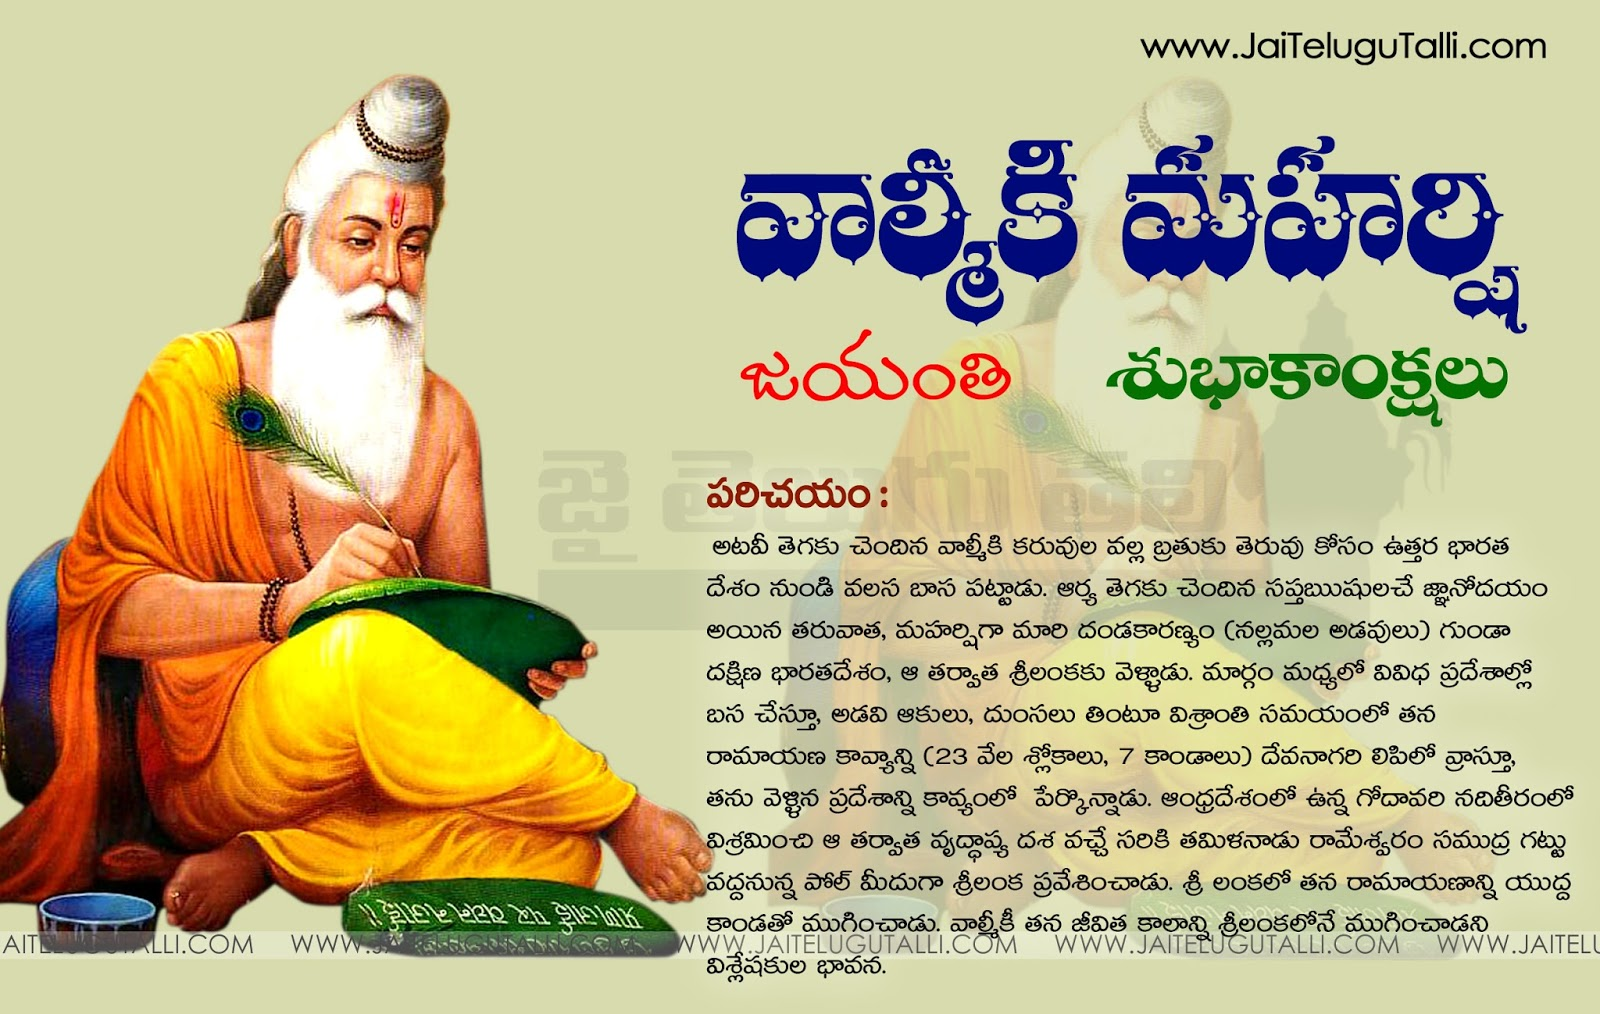 Hd wallpaper valmiki - Here Is Valmiki Maharshi Jayanthi 2015 Wallpapers In Telugu Best Valmiki Maharshi Jayanthi Information In